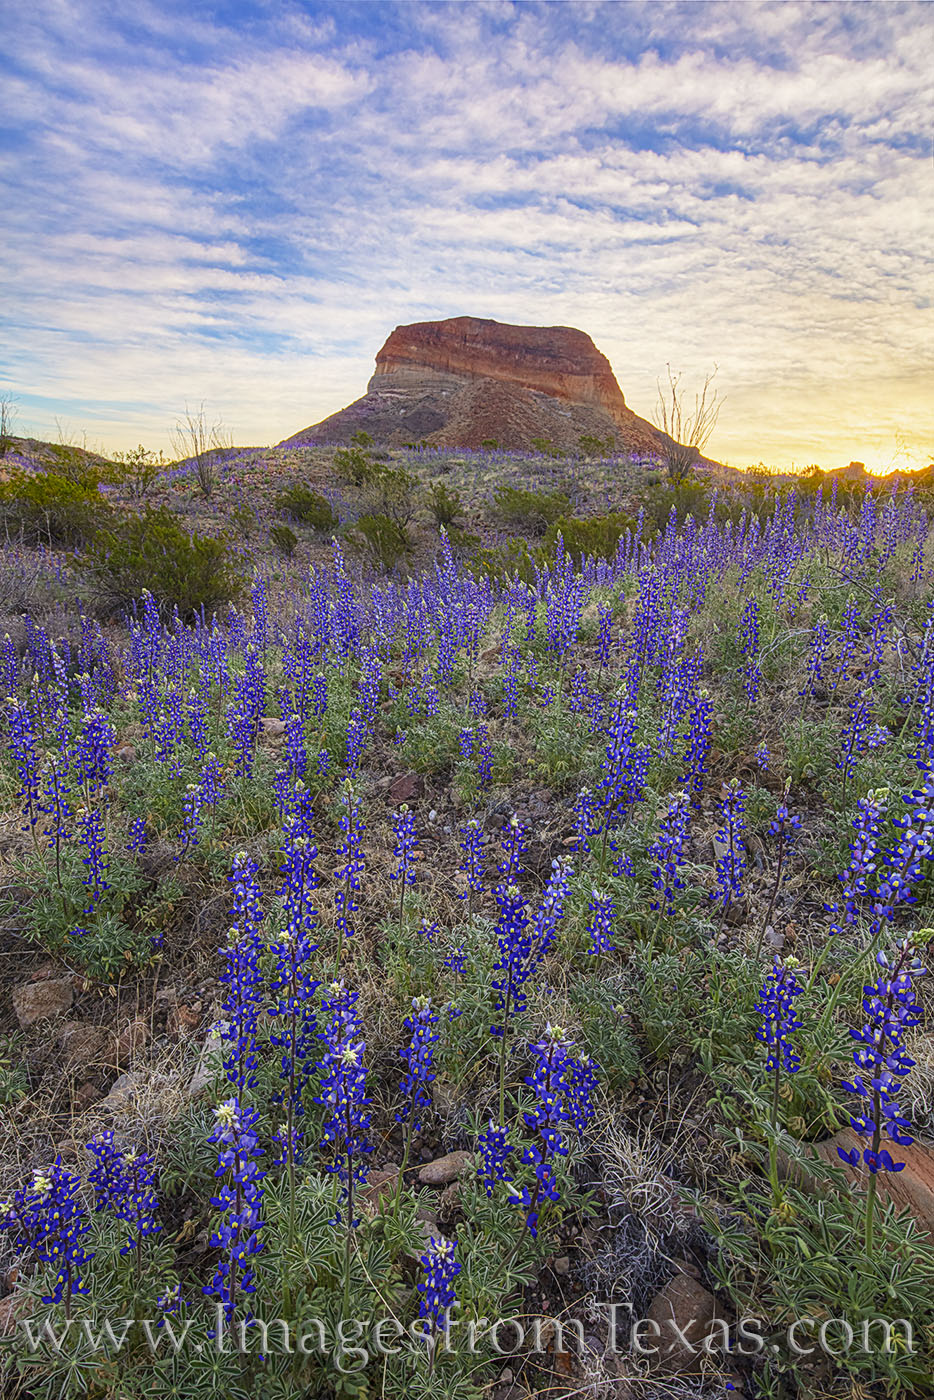 bluebonnets, wildflowers, texas flowers, big bend national park, cerro castellan, chihuahuan desert, chisos mountains, morning, sunrise, desert, bloom, photo